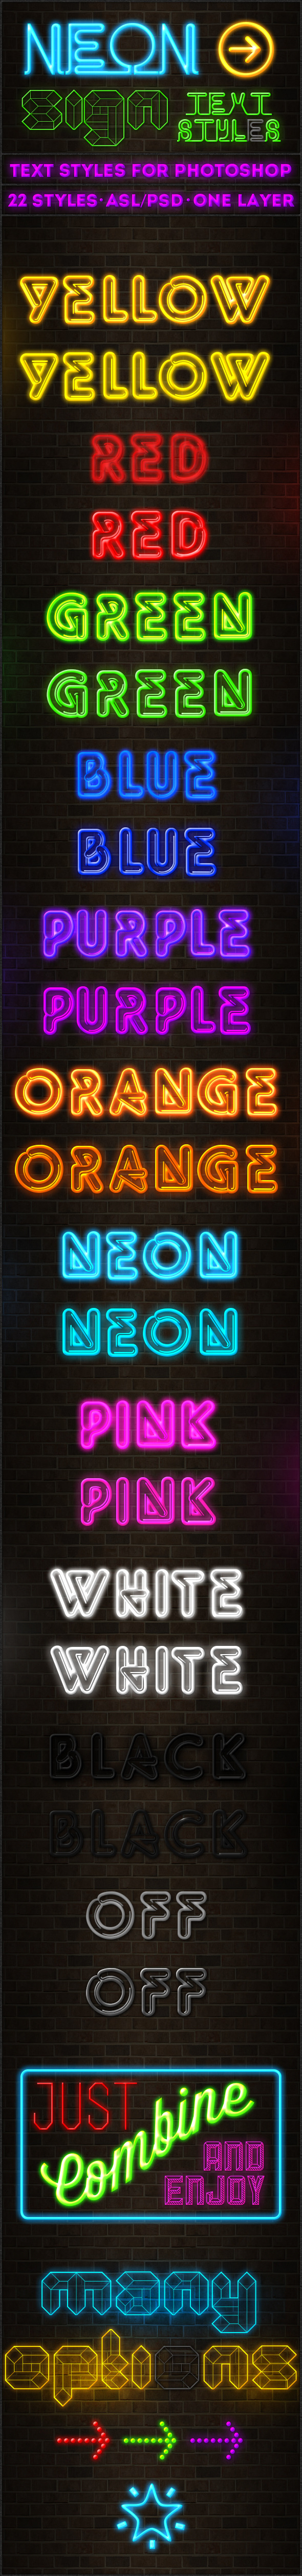 Neon Sign - Text Styles - Text Effects Styles